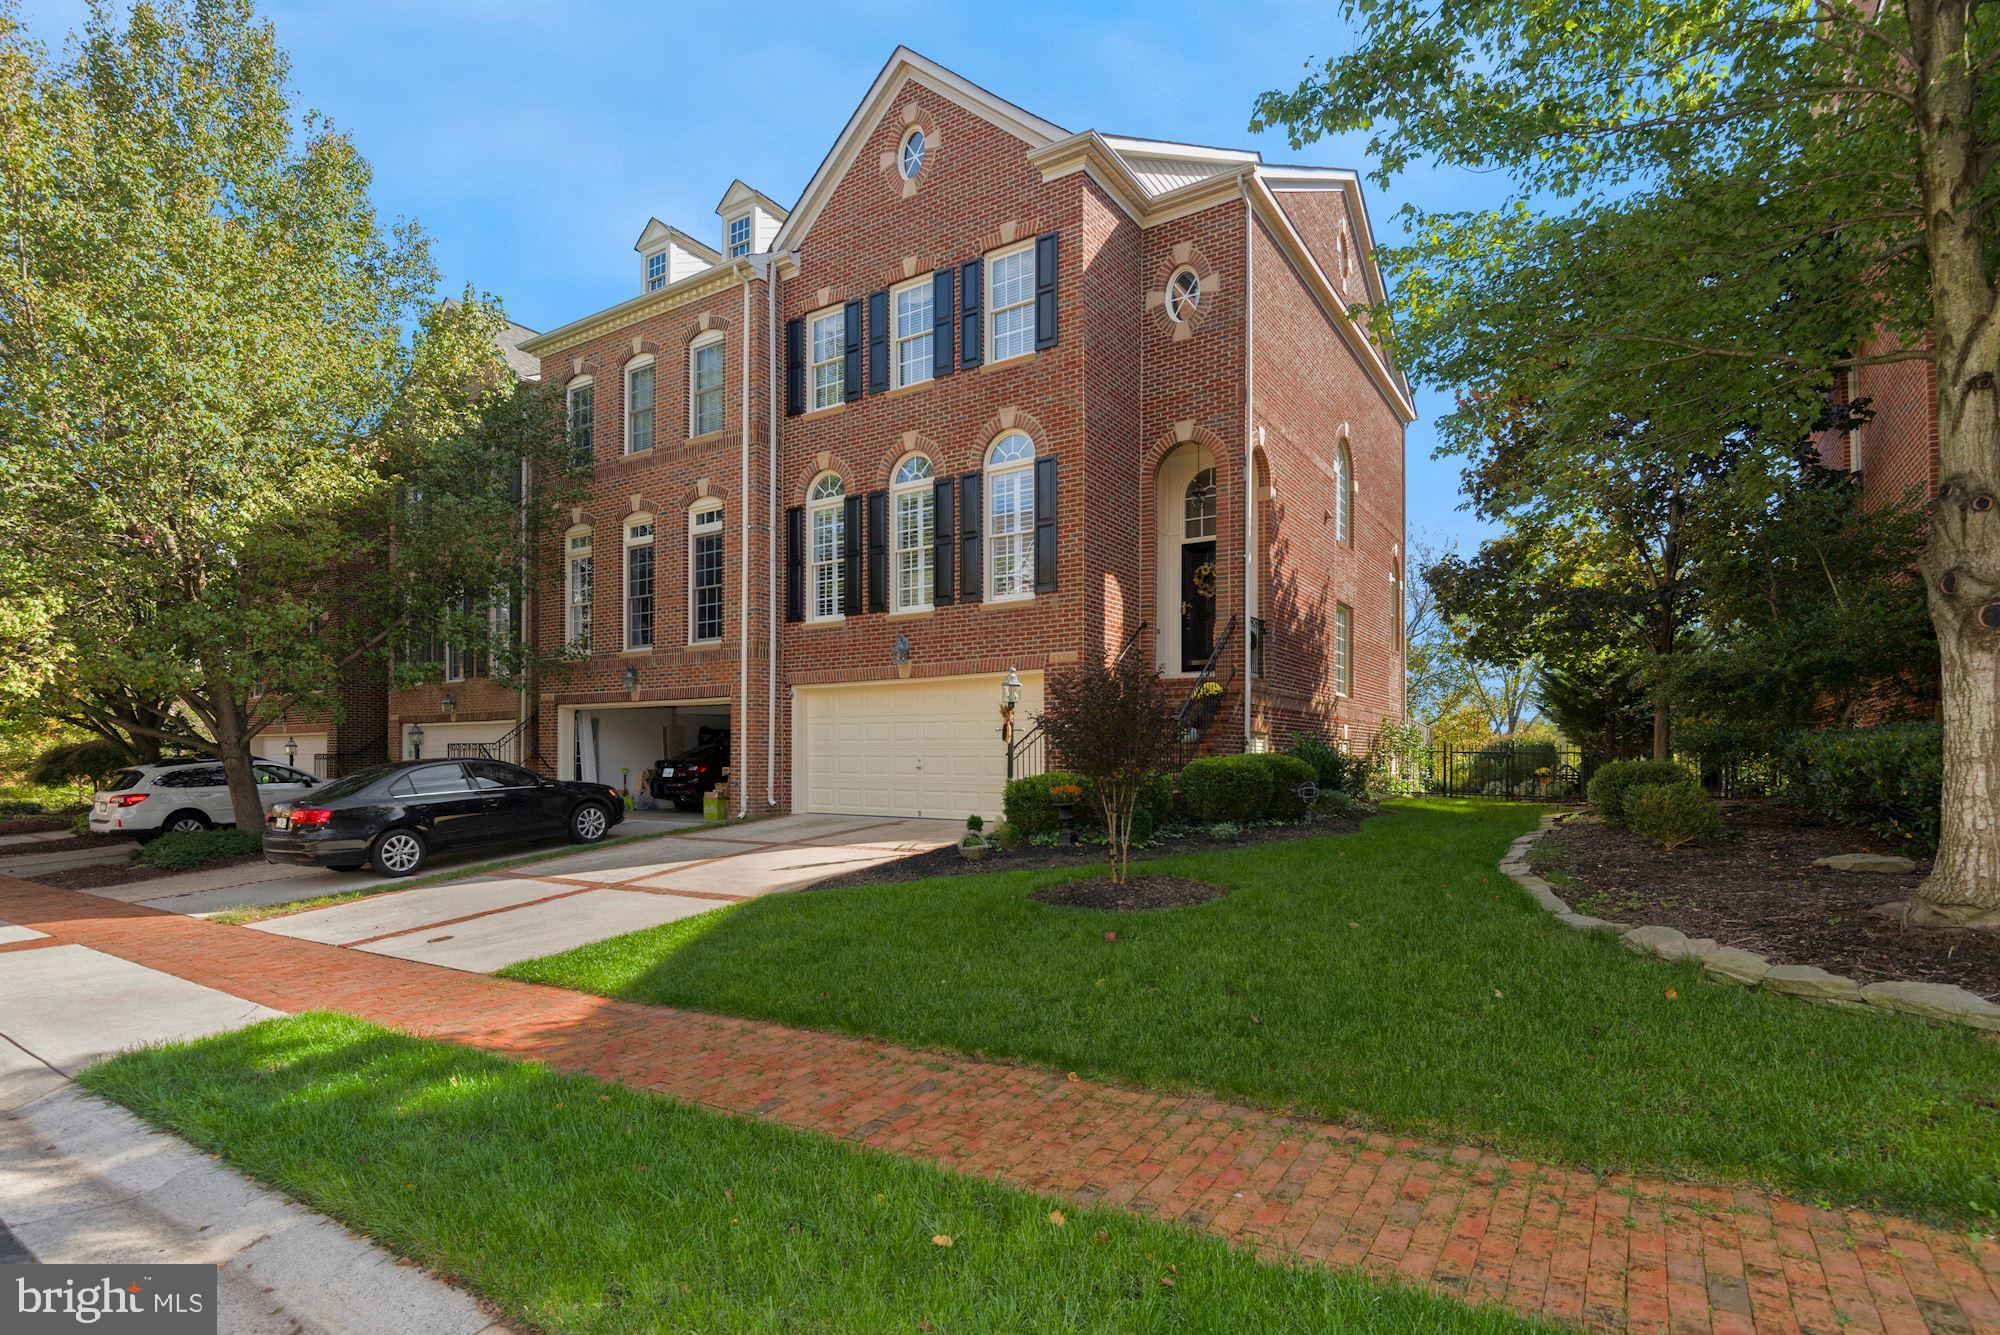 Stunning all brick end unit w/ amazing golf course & year round Goose Creek water views!  Better yet, this home features southern exposure for you to enjoy the spacious deck (with Awning), the Master Bedroom balcony, and the patio off of the walk-out lower level.   This FOUR LEVEL home has been meticulously maintained and tastefully updated, don't miss out.    Some of the highlights include gleaming hardwood floors on the main level,  new quartz countertops and an expanded kitchen island and French doors leading to composite deck w/ wrought iron railing.  Great floorplan w/ Family/ Sitting Room off of the kitchen, along with large Dining and Living Room areas featuring extensive crown moulding, chair rail, etc.   Finished 4th level is large enough to be an additional Guest Room AND an ideal home office with stunning golf & water views.  The lower level recreation room boasts upgraded tile flooring, built in shelves flanking the Gas FP and an upgraded bathroom.  Even the stairs have been tastefully upgraded, with white wood stairs and carpet runners.   Many other details and upgrades, truly TURN KEY property.   Professional Photos on Wed 10/14, Showings can be scheduled starting Thursday 10/15.   Please see Drone tour under tours!